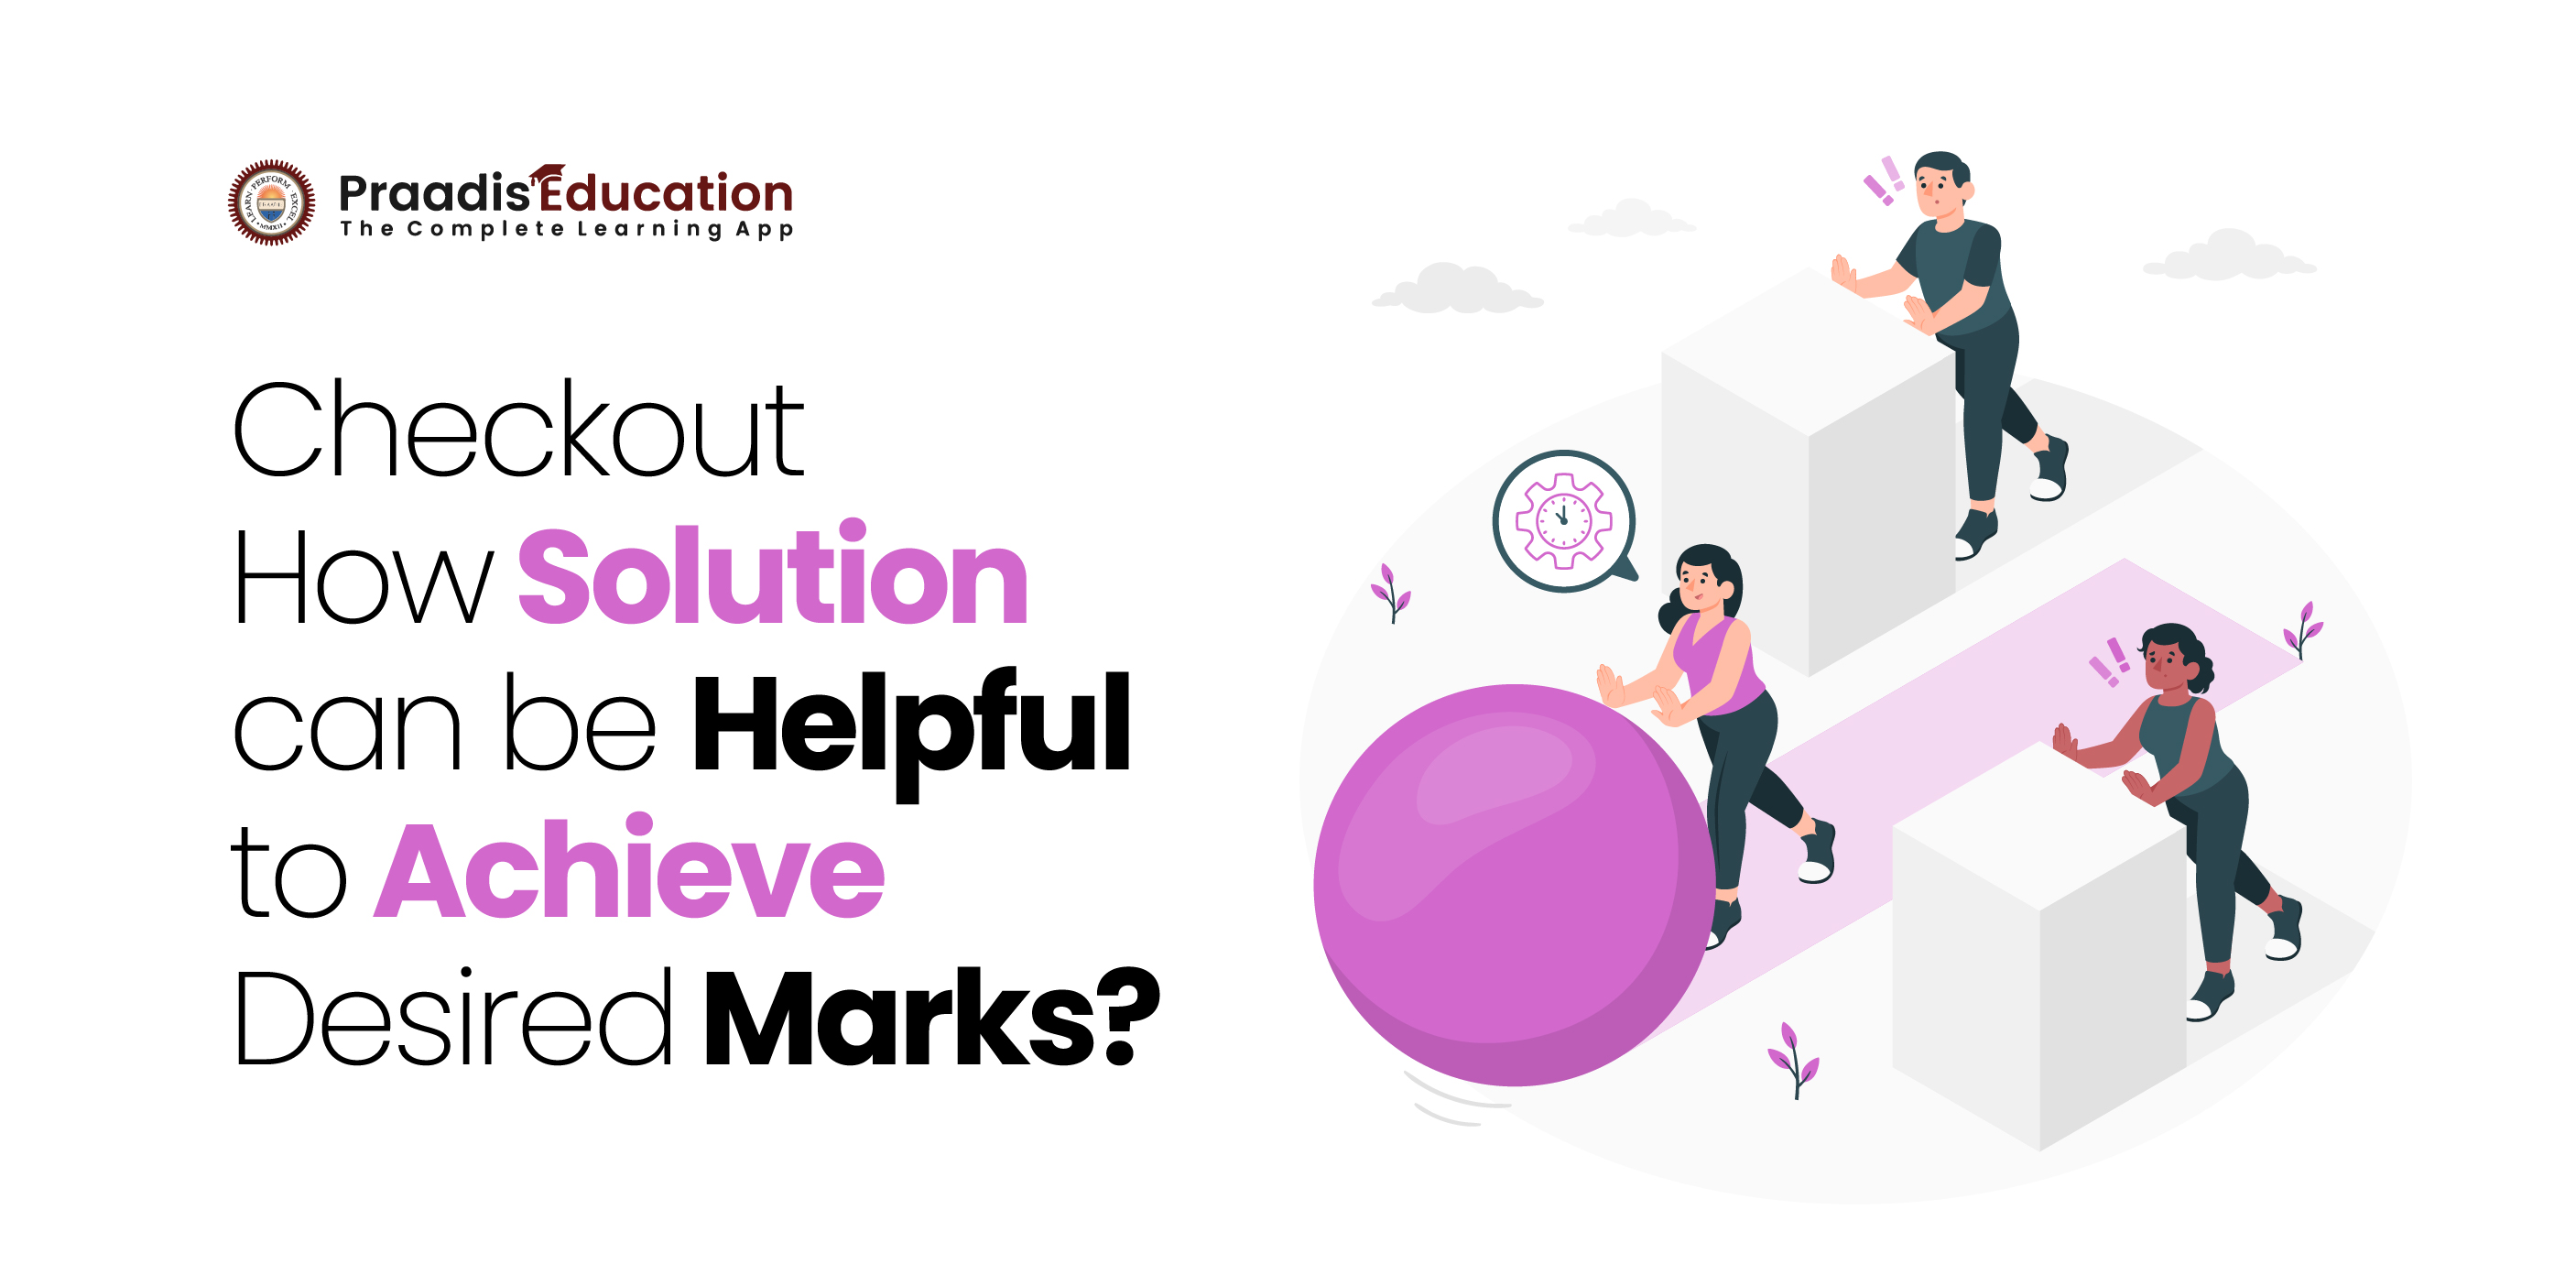 Checkout how to Solution can be Helpful to Achieve Desird Marks